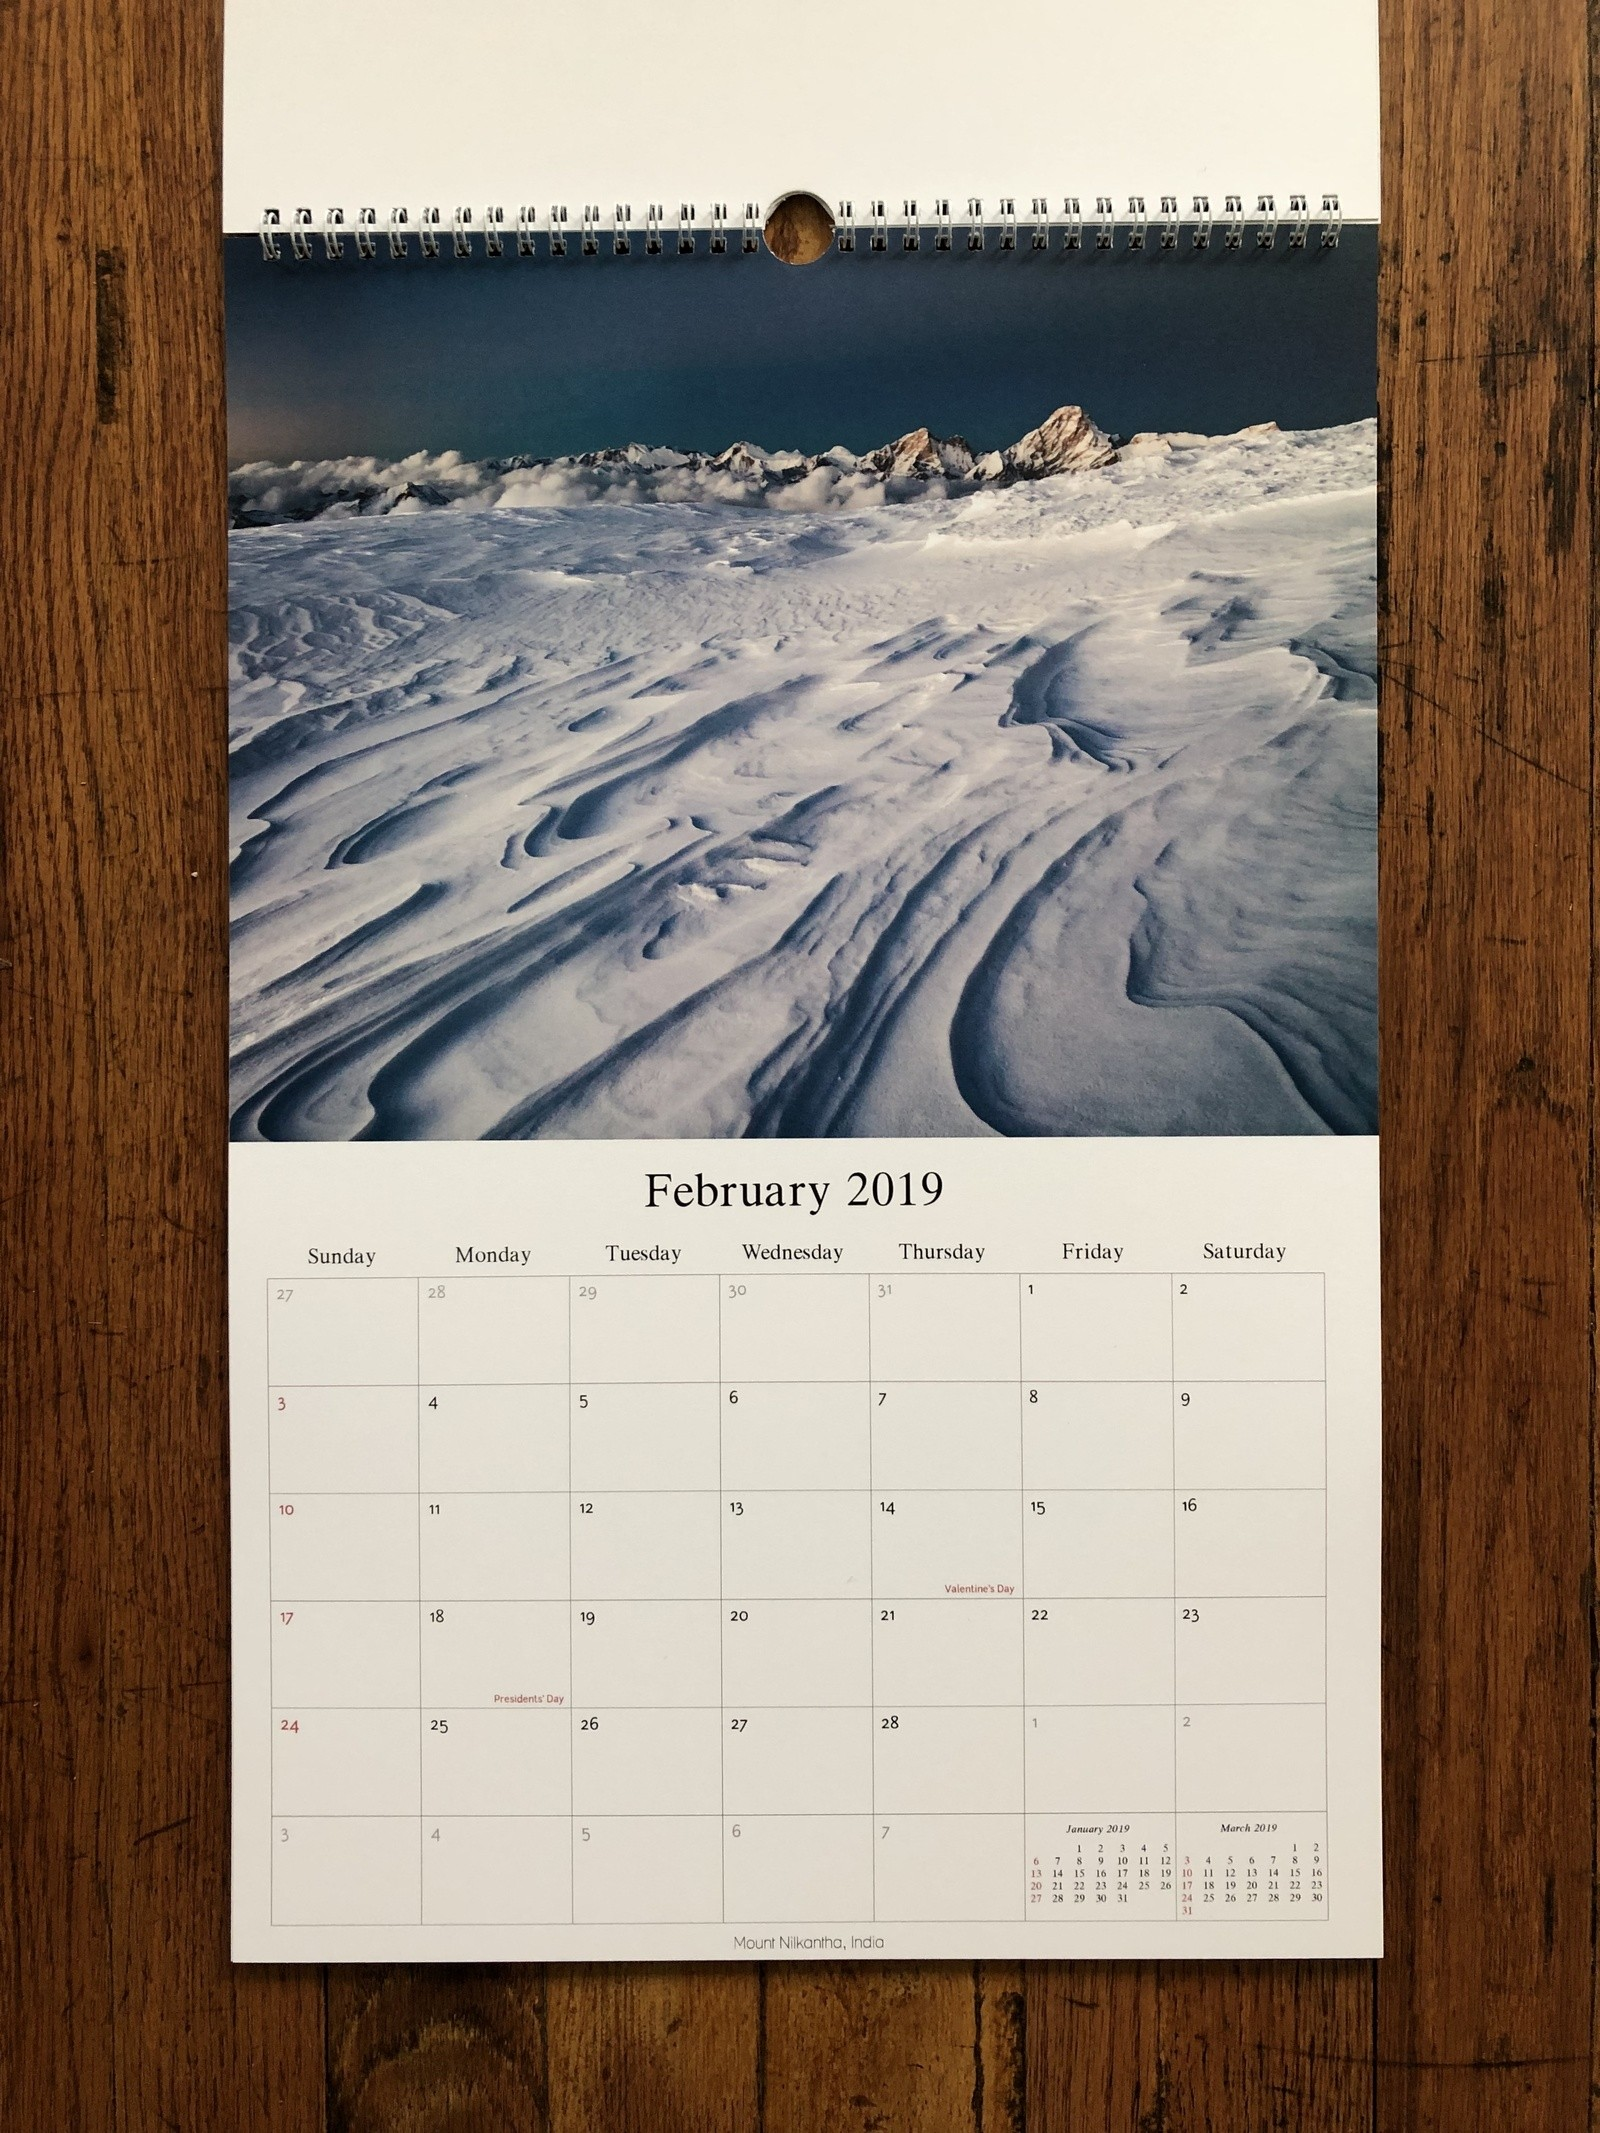 March 2019 Calendar India Más Recientes 2019 Calendar Jason Thompson Media Of March 2019 Calendar India Actual Tag India